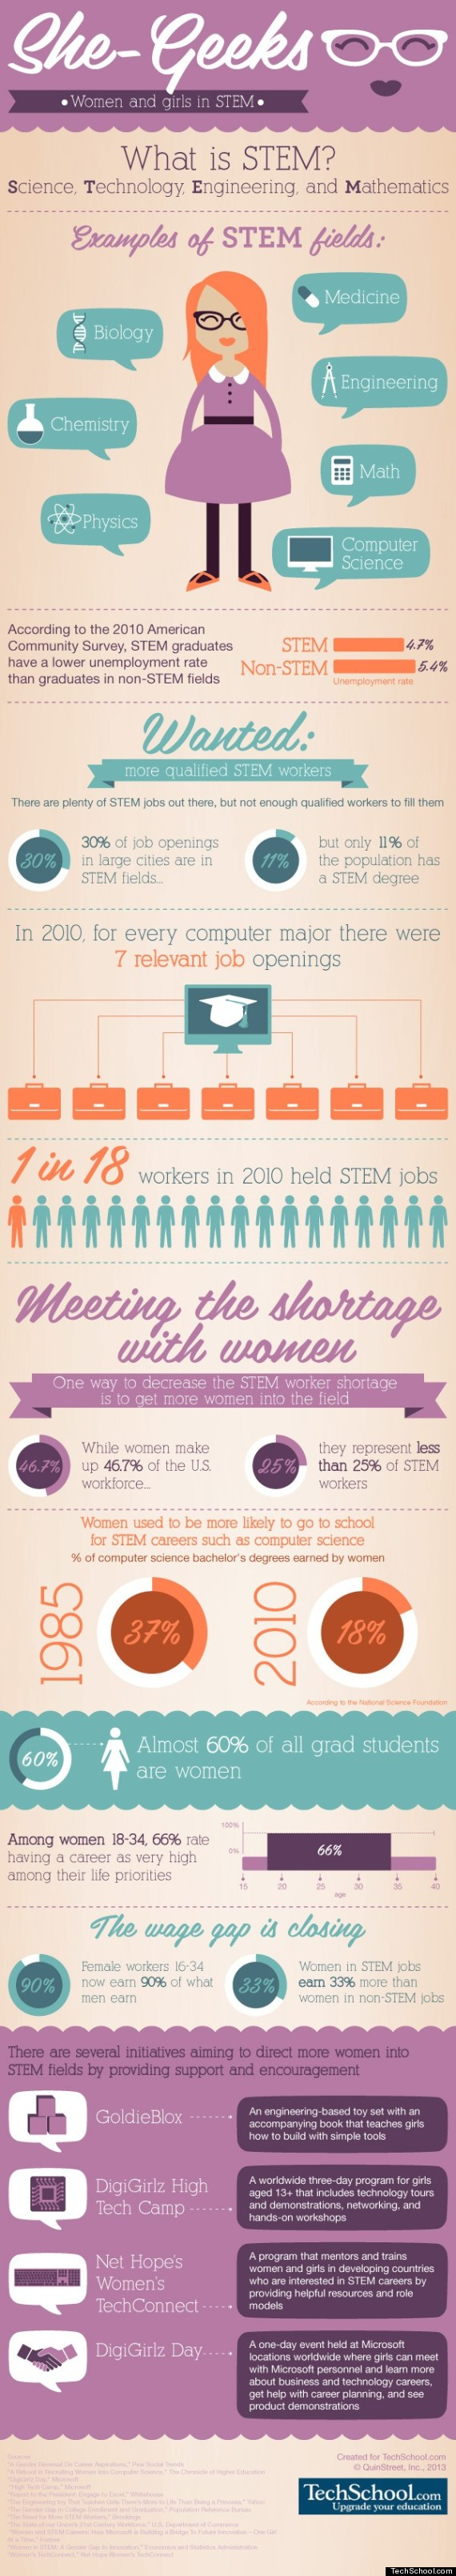 The Tech Industry Needs More Women Role Models, Here's Why [infographic]